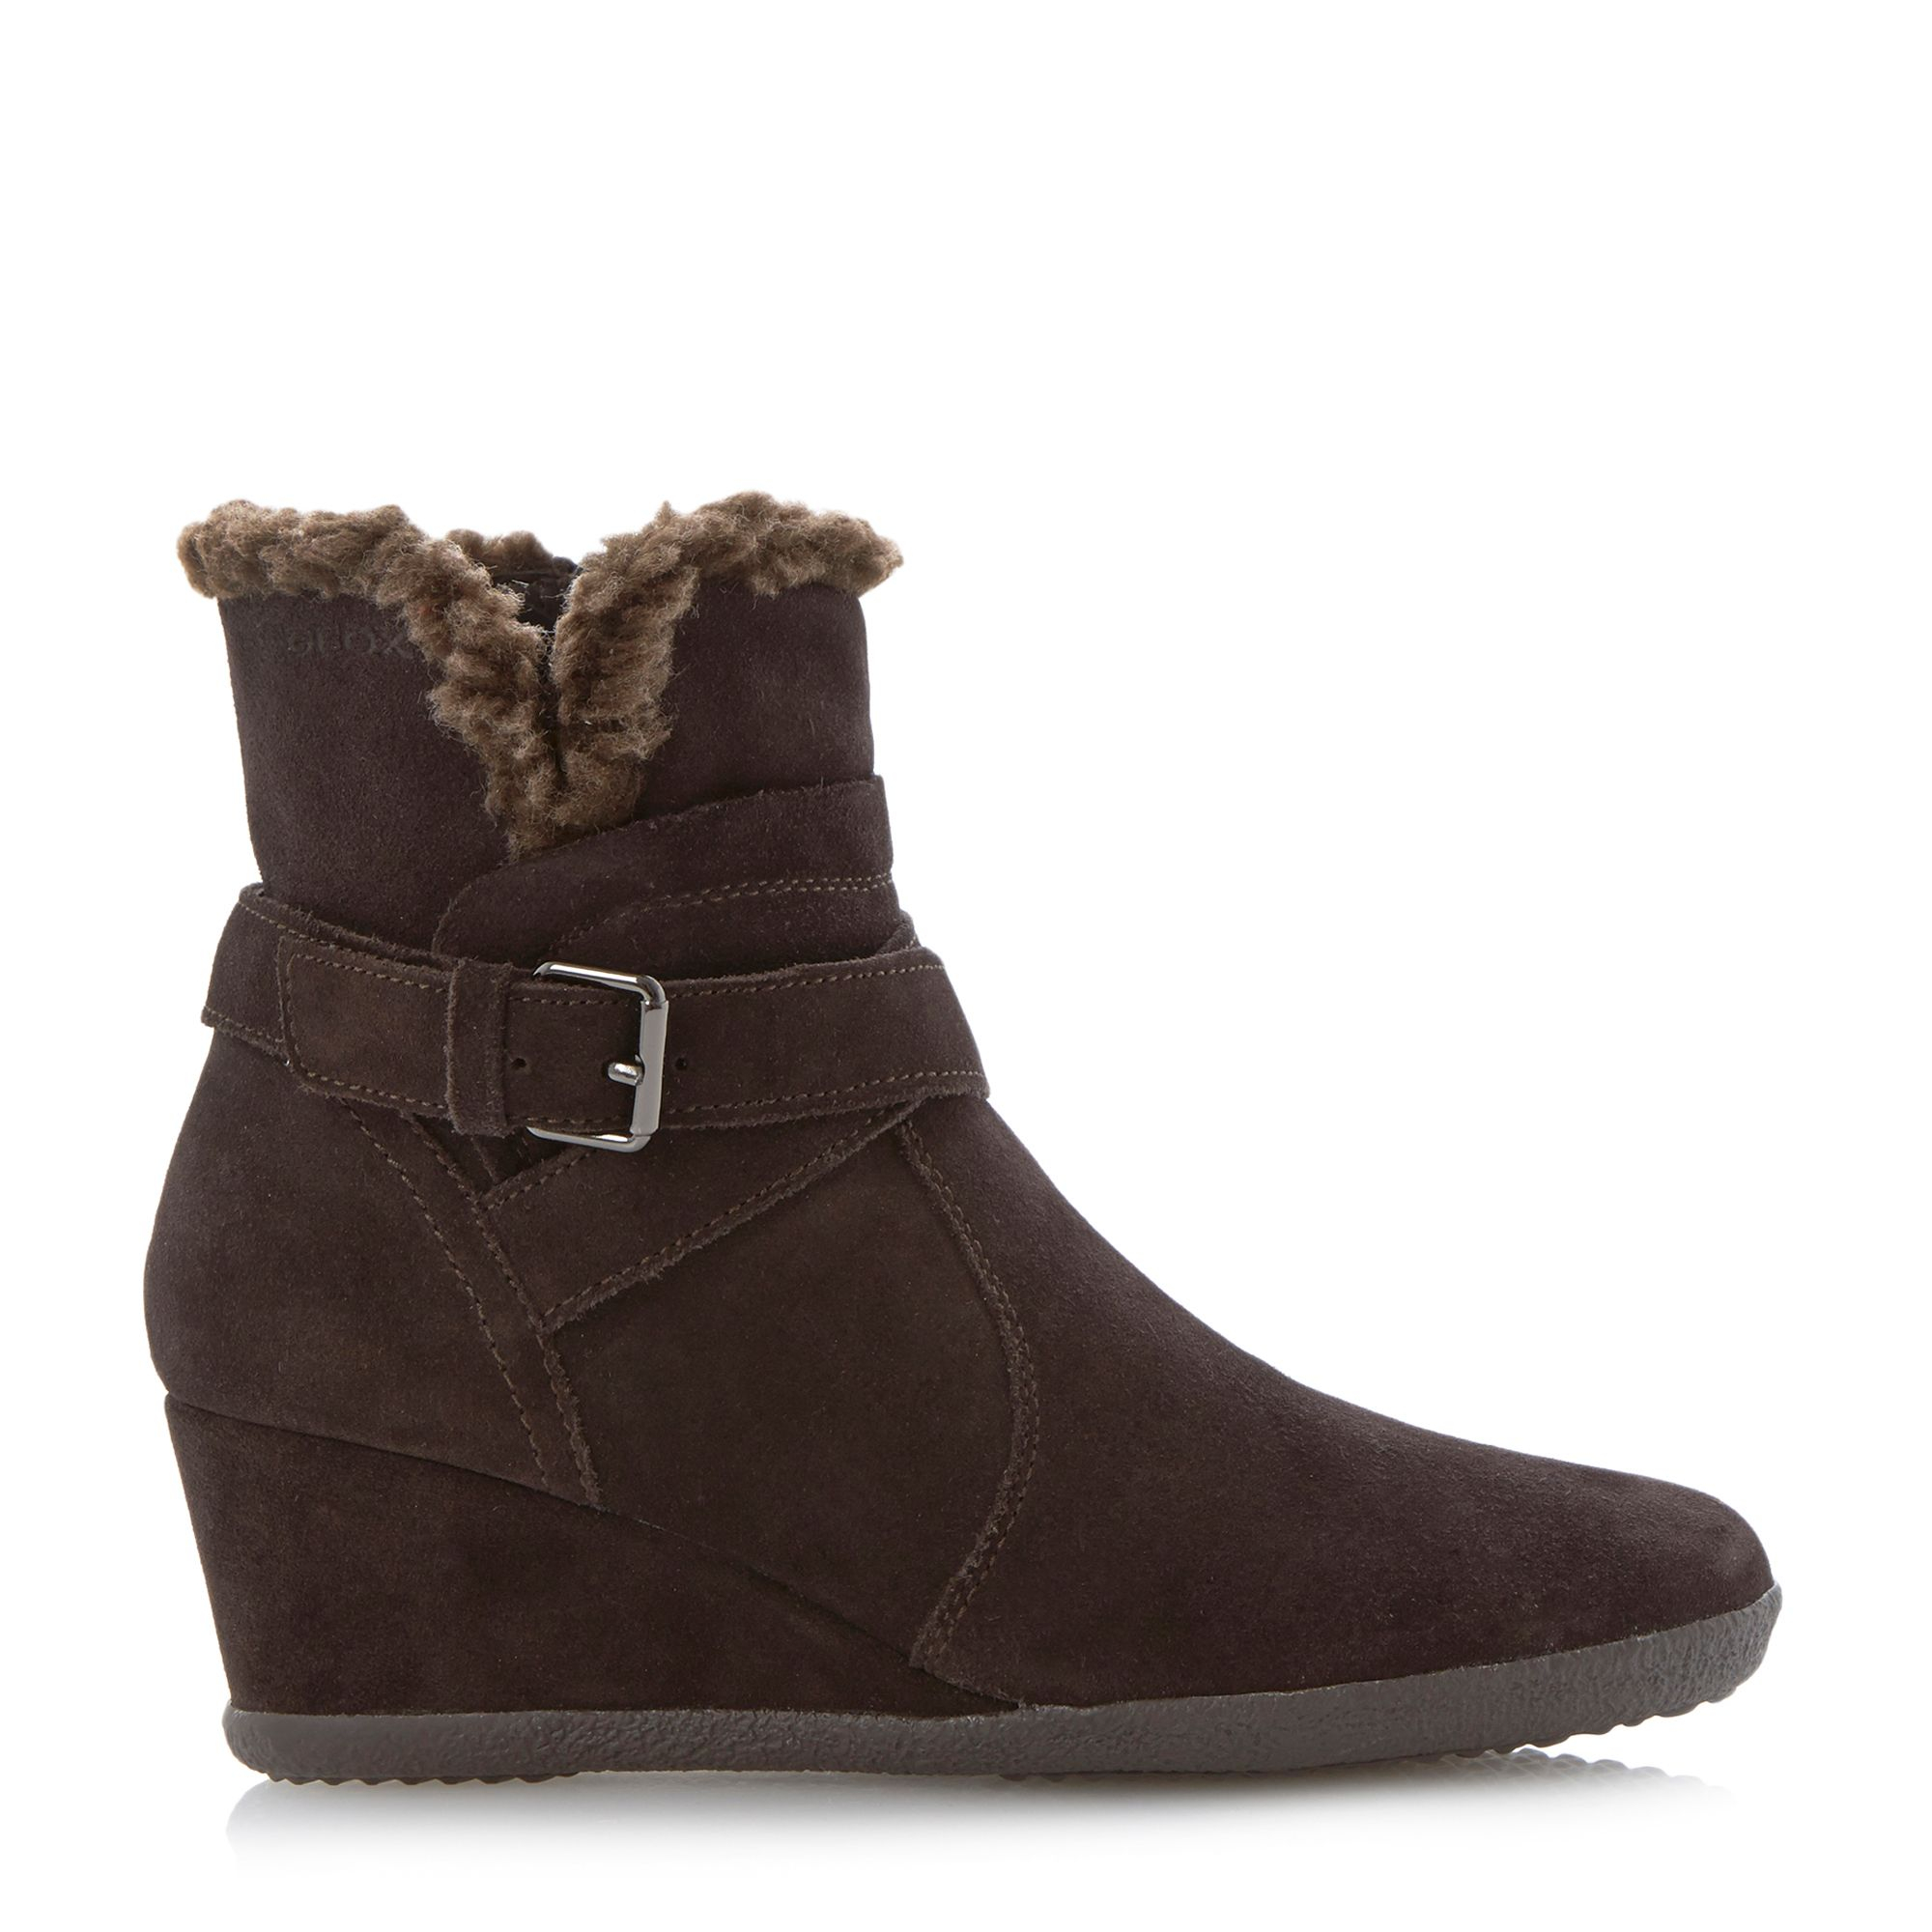 geox amelia stivali wedge buckle ankle boots in brown lyst